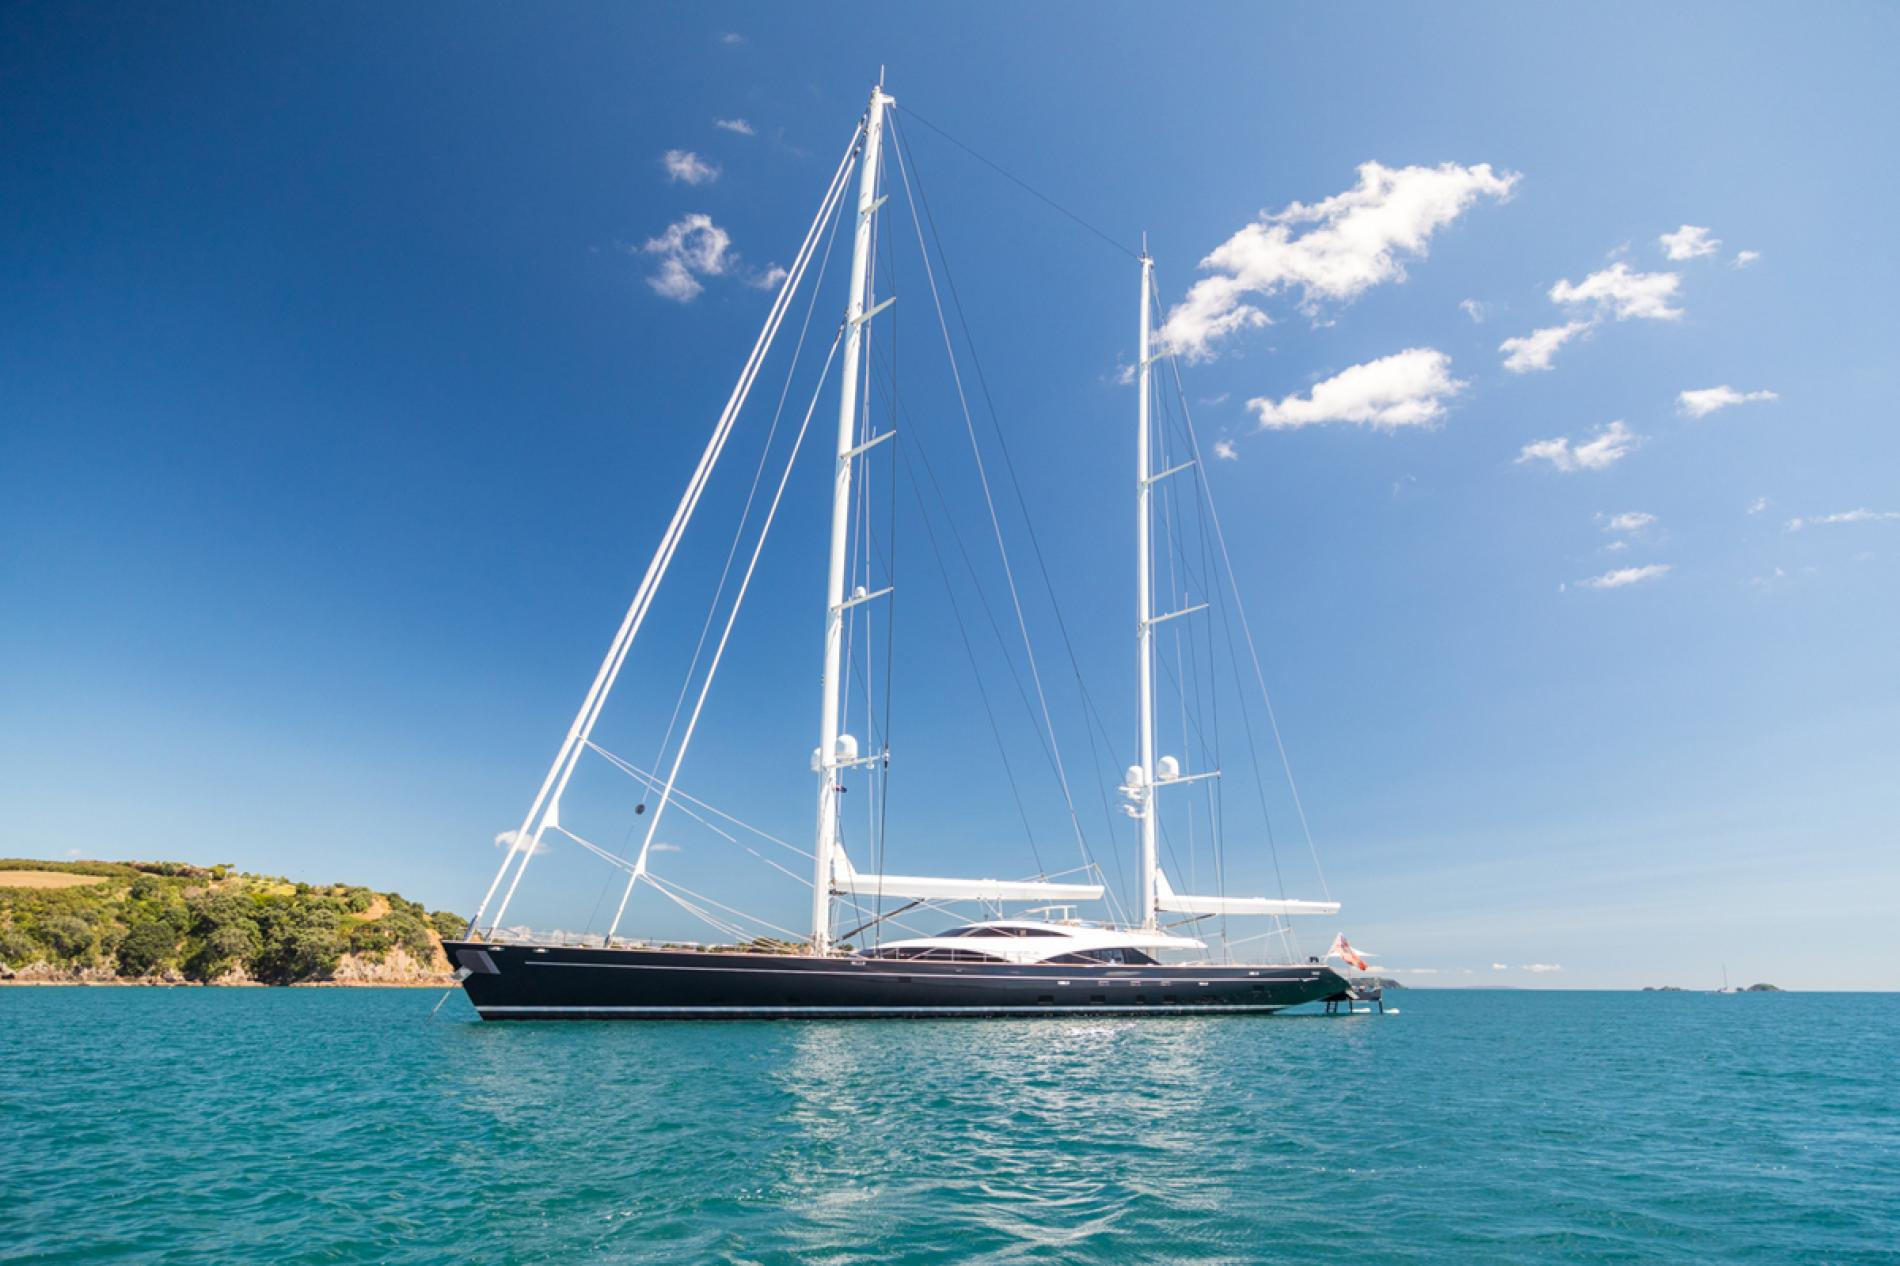 TWIZZLE - Luxury Sailing Yacht For Charter - Exterior Design - Img 1   C&N